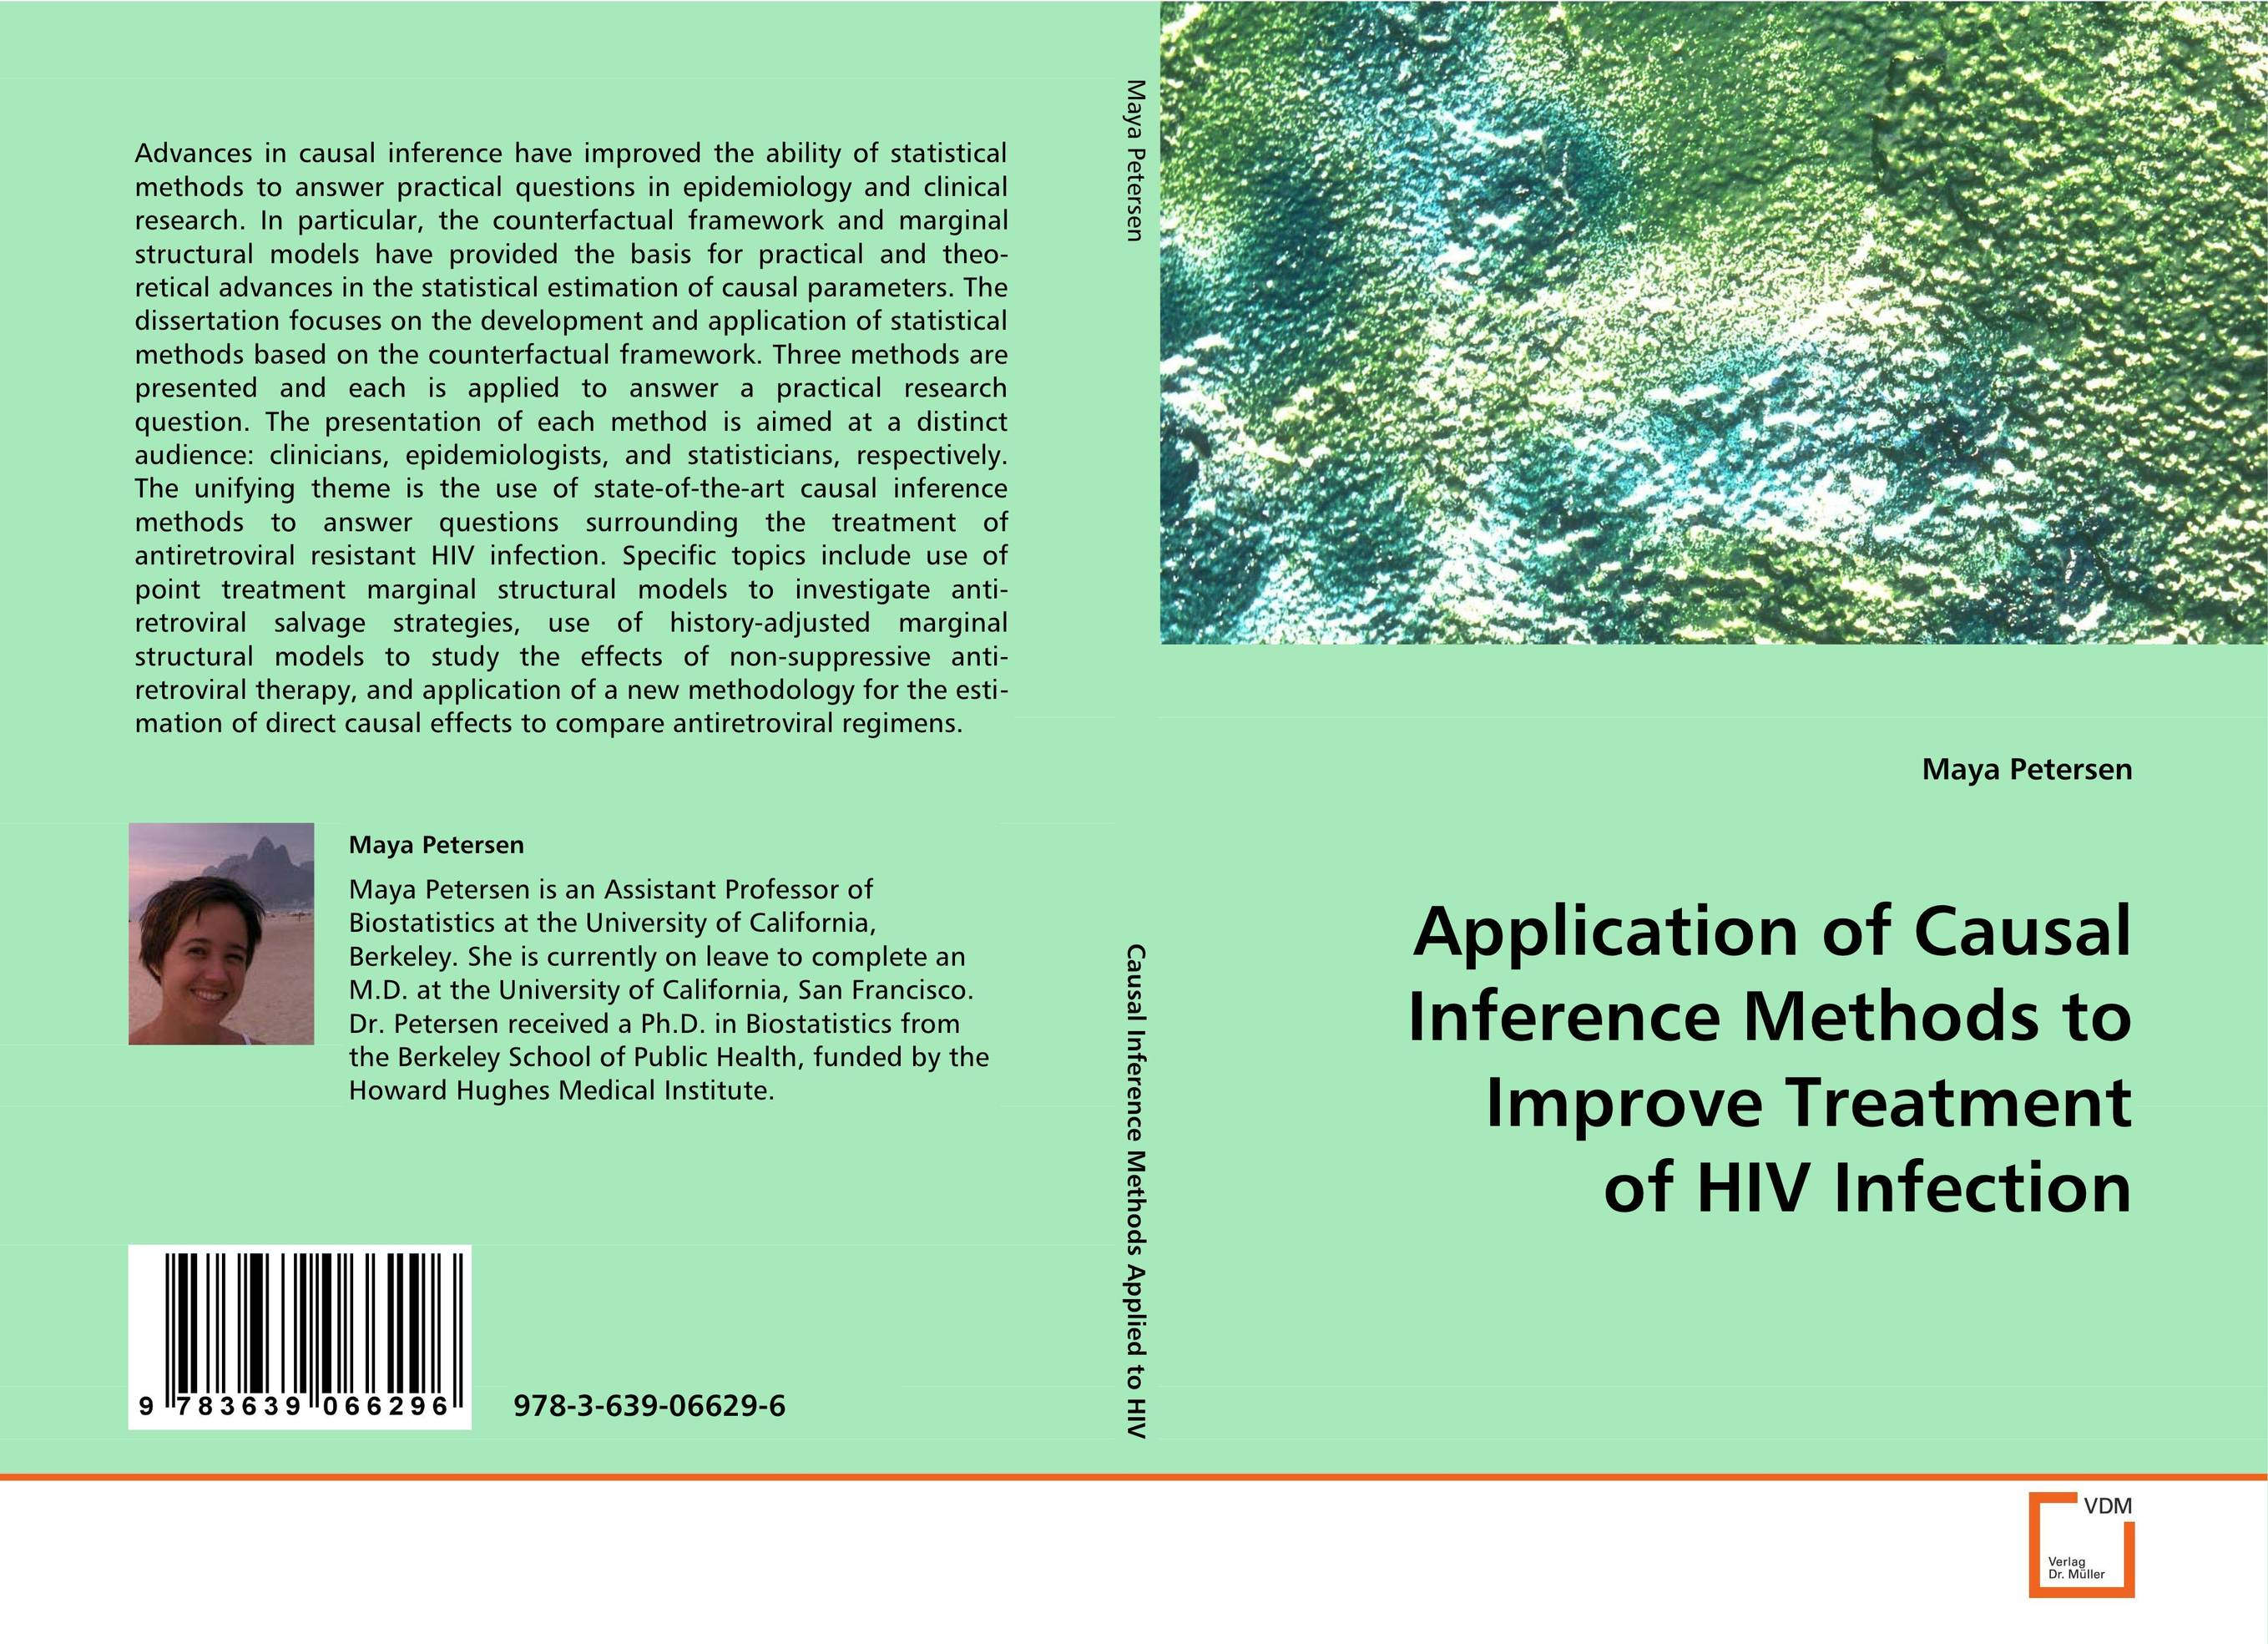 Application of Causal Inference Methods to Improve Treatment of HIV Infection the application of wavelets methods in stefan problem